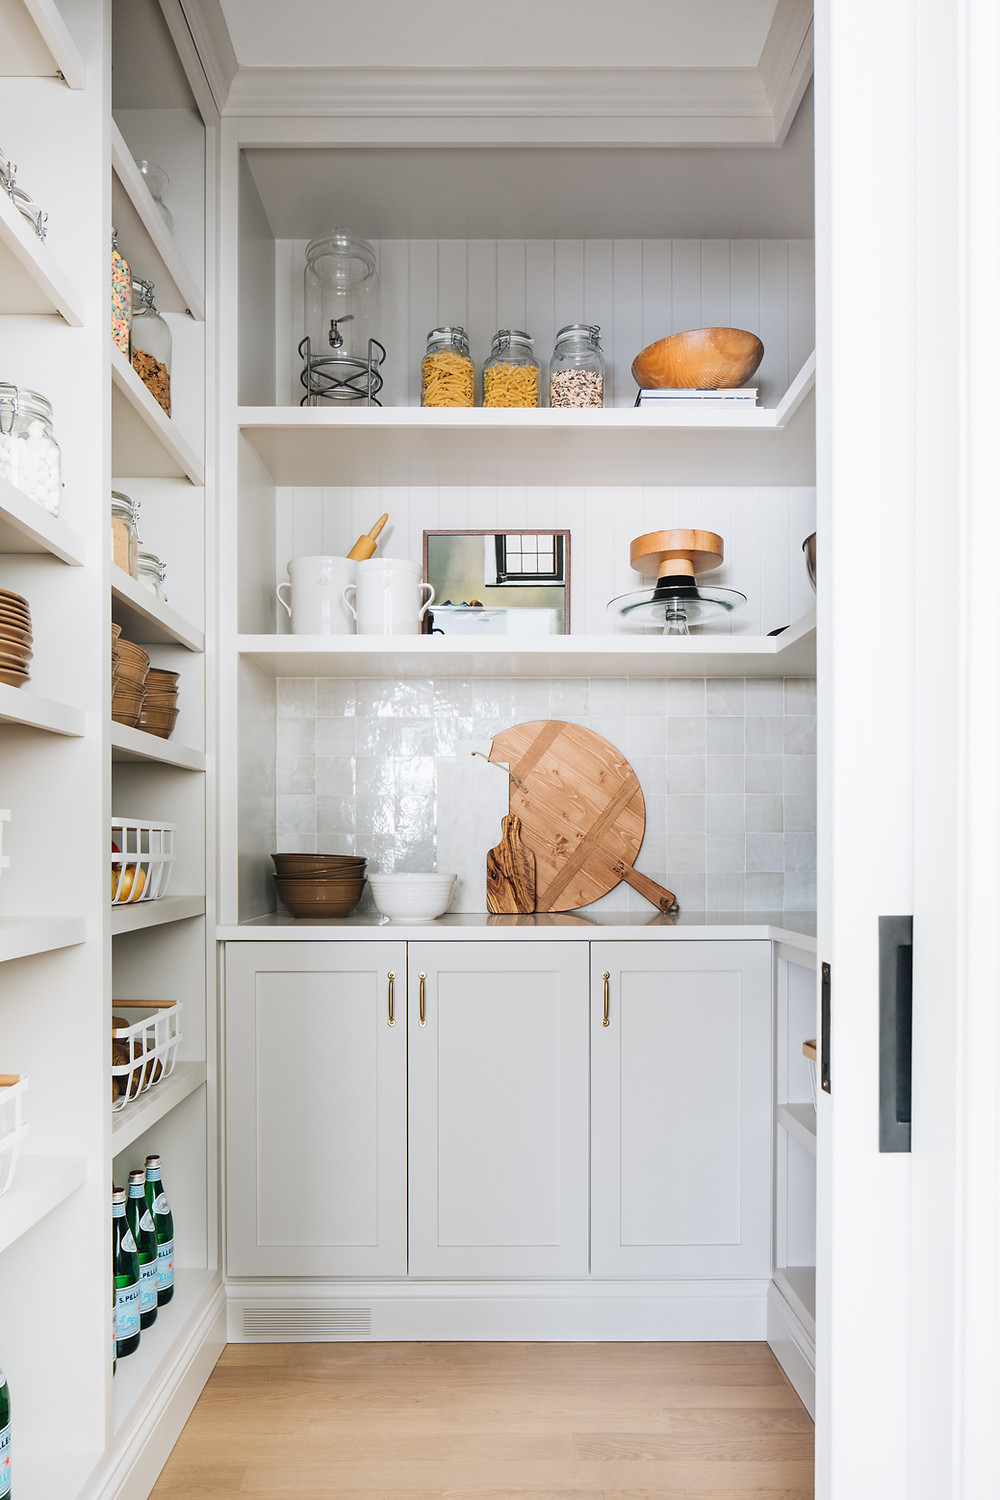 pantry with cabinets and open shelves